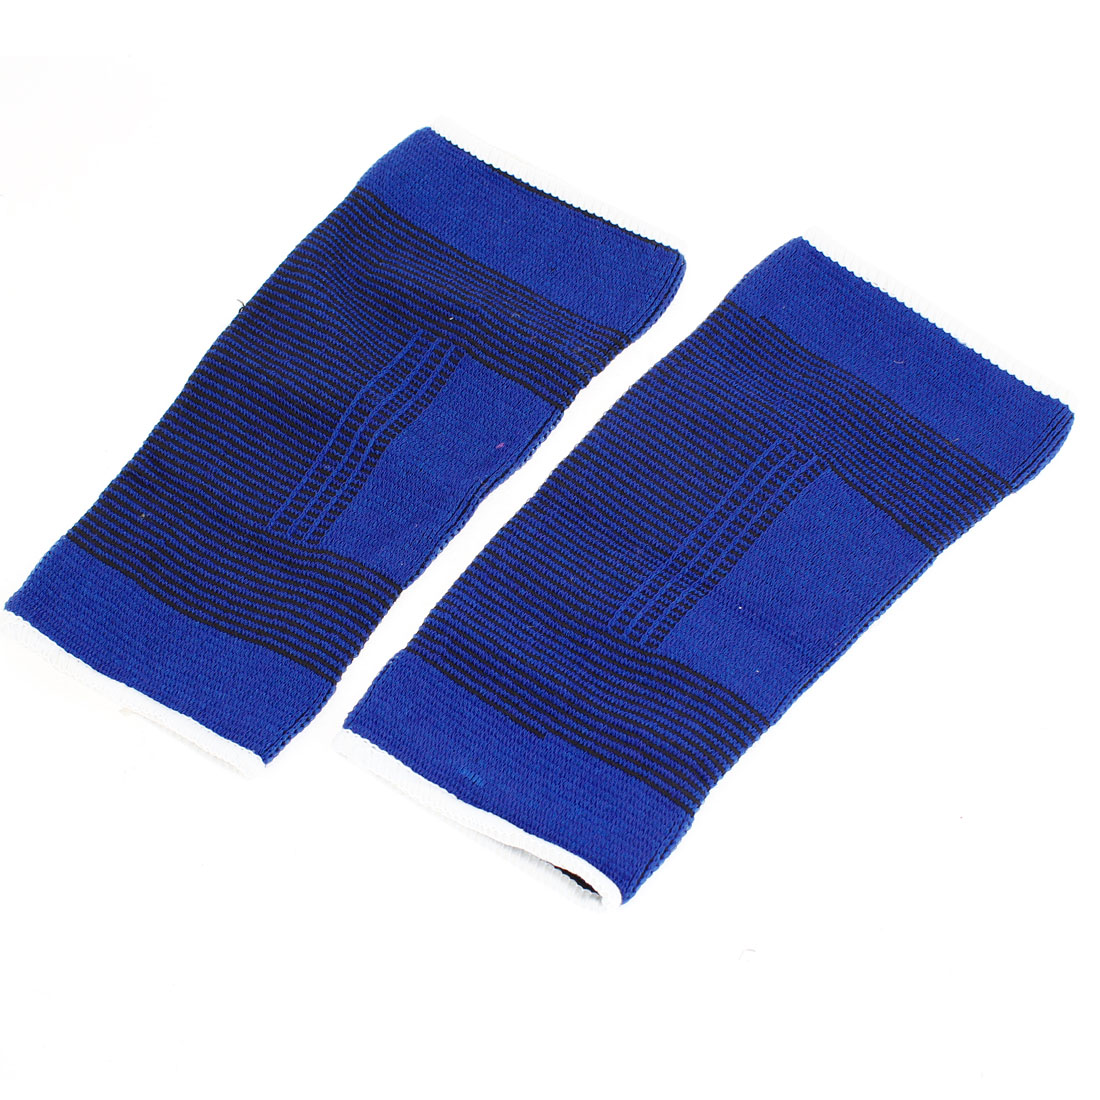 2 Pcs Blue Elastic Strechy Fabric Band Athletic Elbow Protector